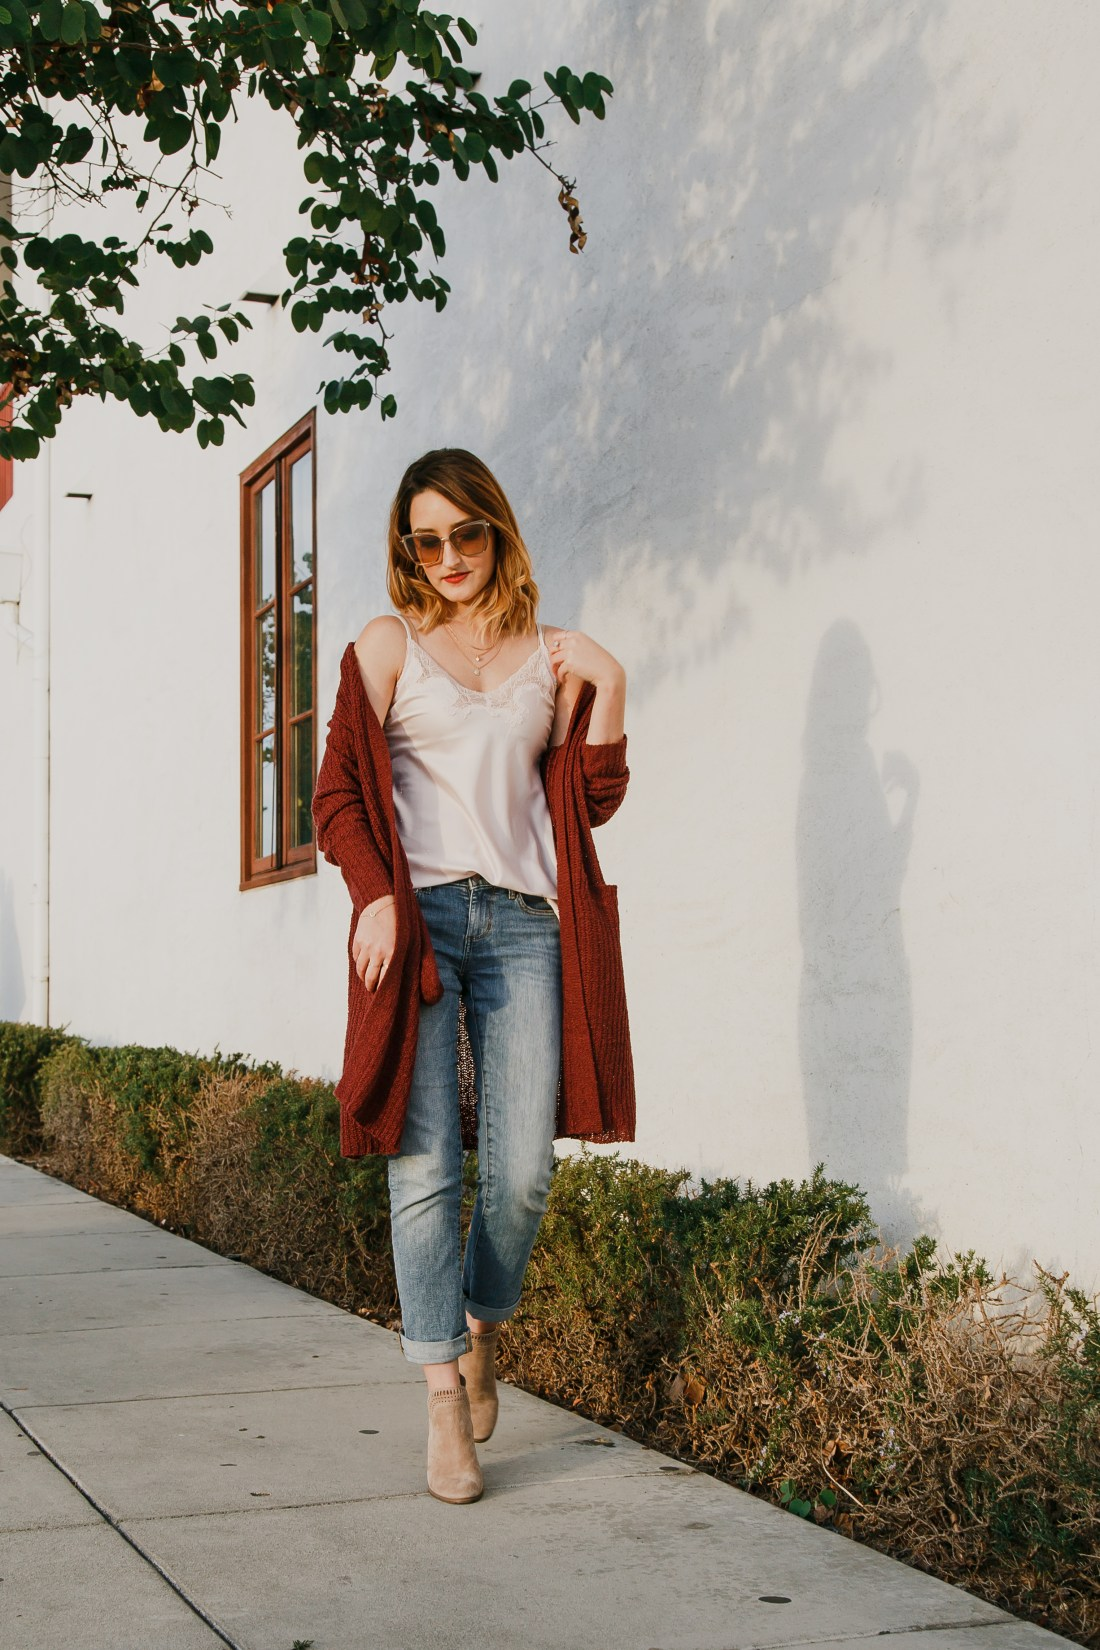 Oxblood Cardigan with Boyfriend Jeans and Camisole